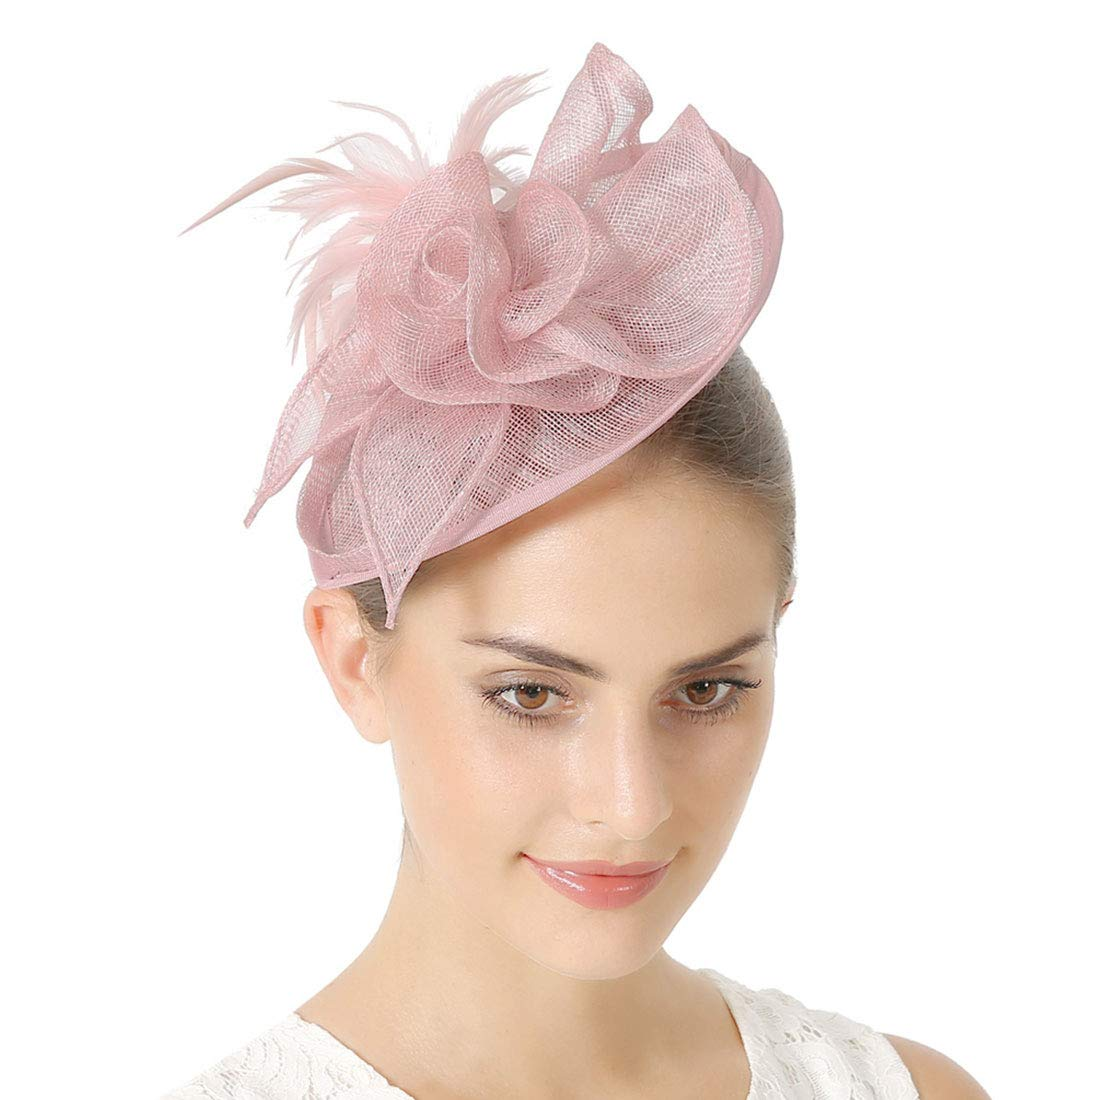 Sinamay Vintage Women Fascinators Derby Hat Feather with Headband Cocktail Headpiece for Tea Party Wedding (One Size, Pink) by JaosWish